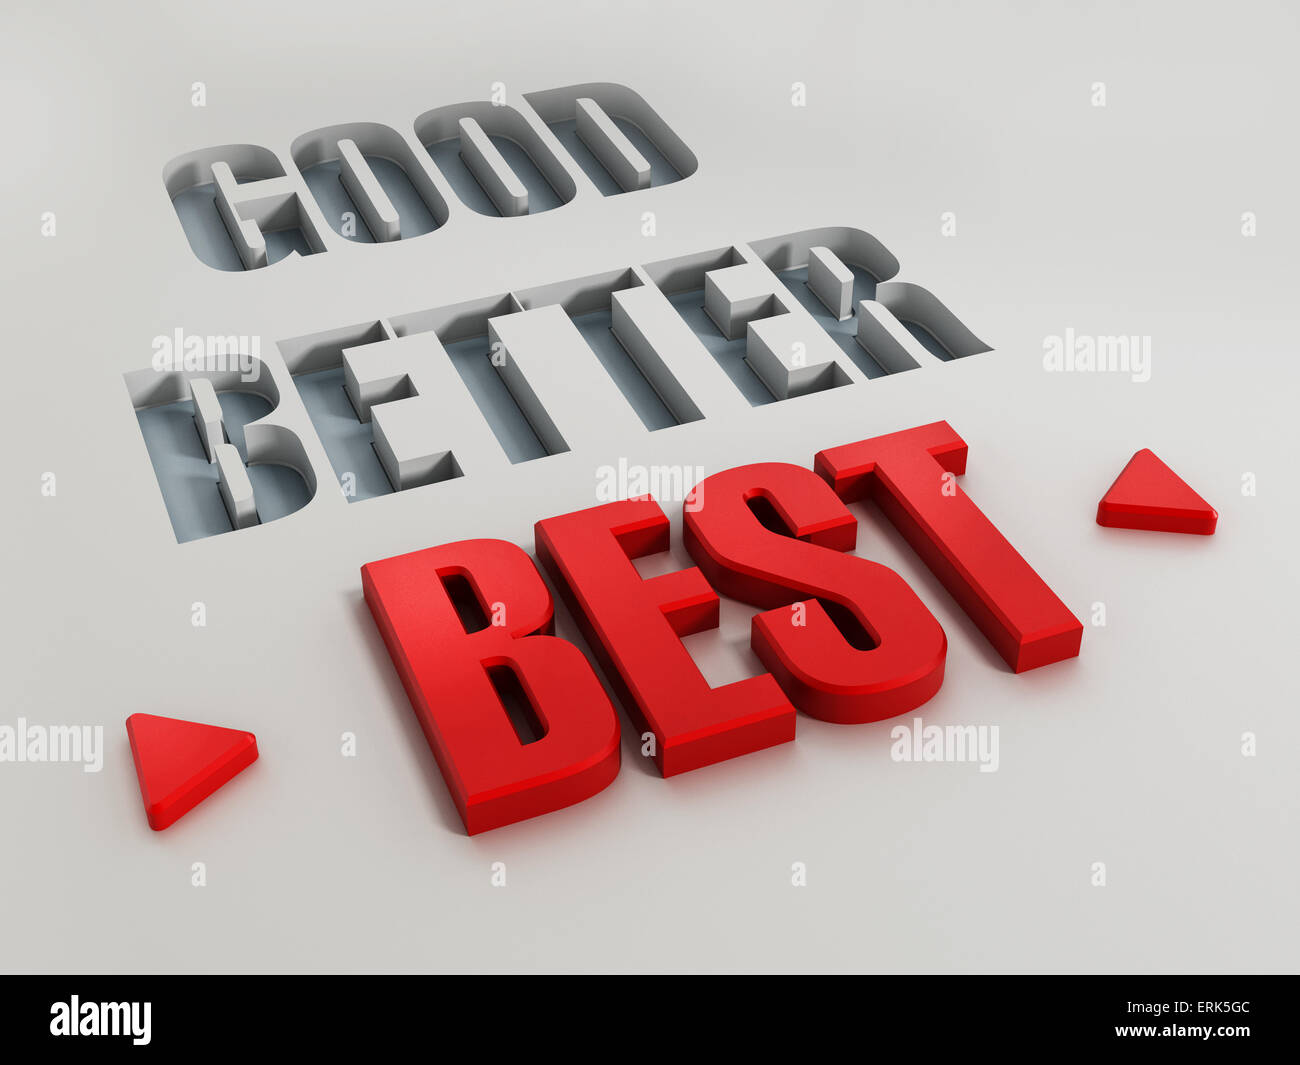 Good, better and best words with highlighted red best. - Stock Image